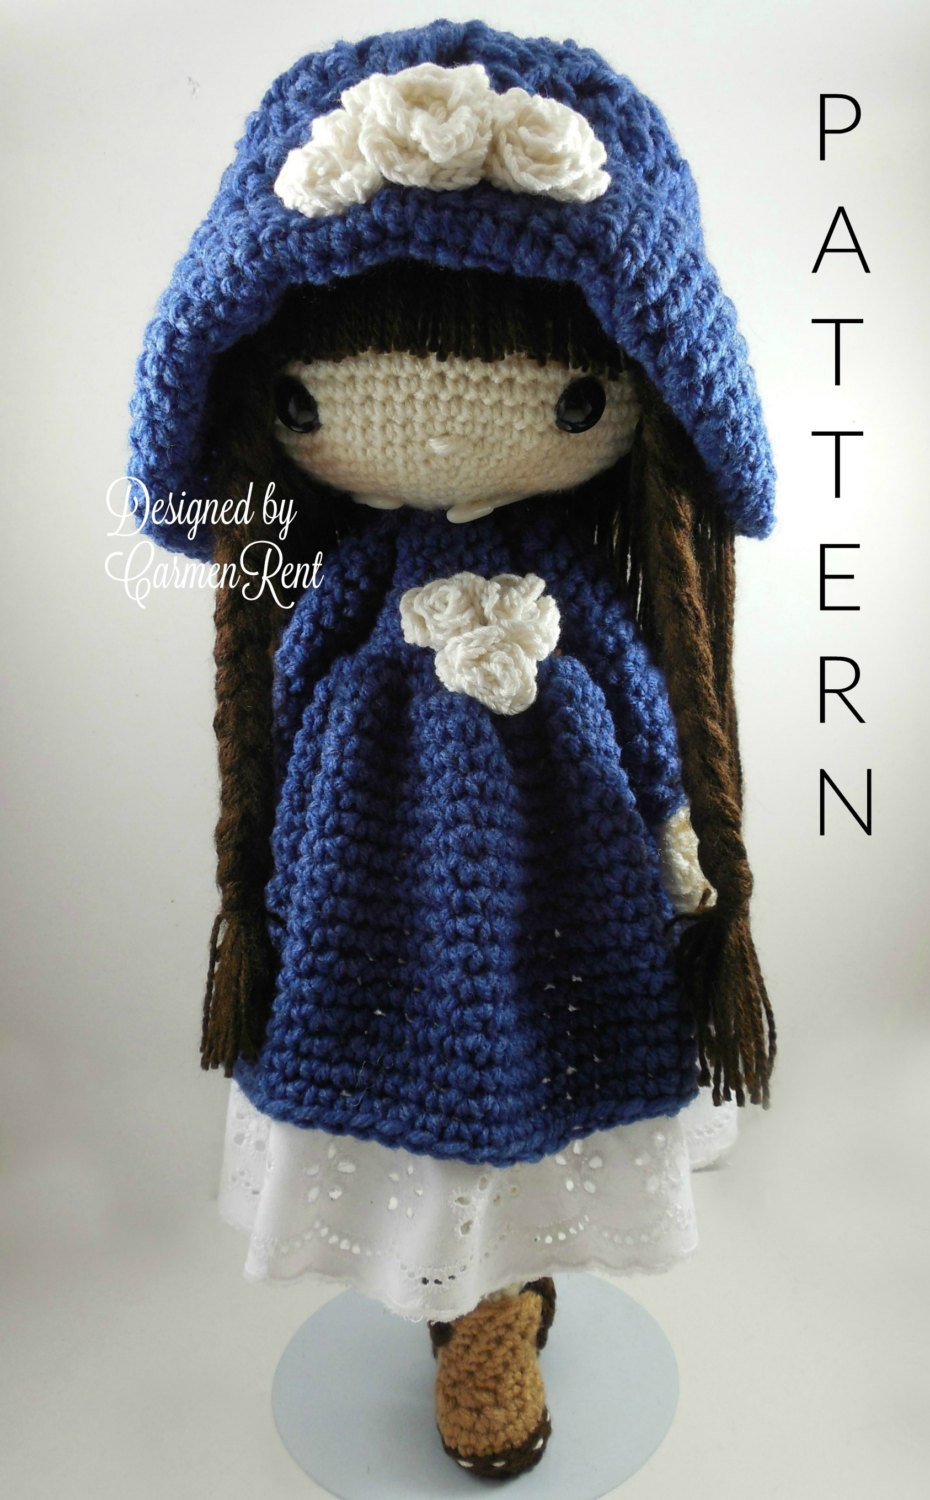 Doll Patterns Best Of Matilda Amigurumi Doll Crochet Pattern Pdf Of Doll Patterns Luxury Dolls Patterns Free Free Patterns